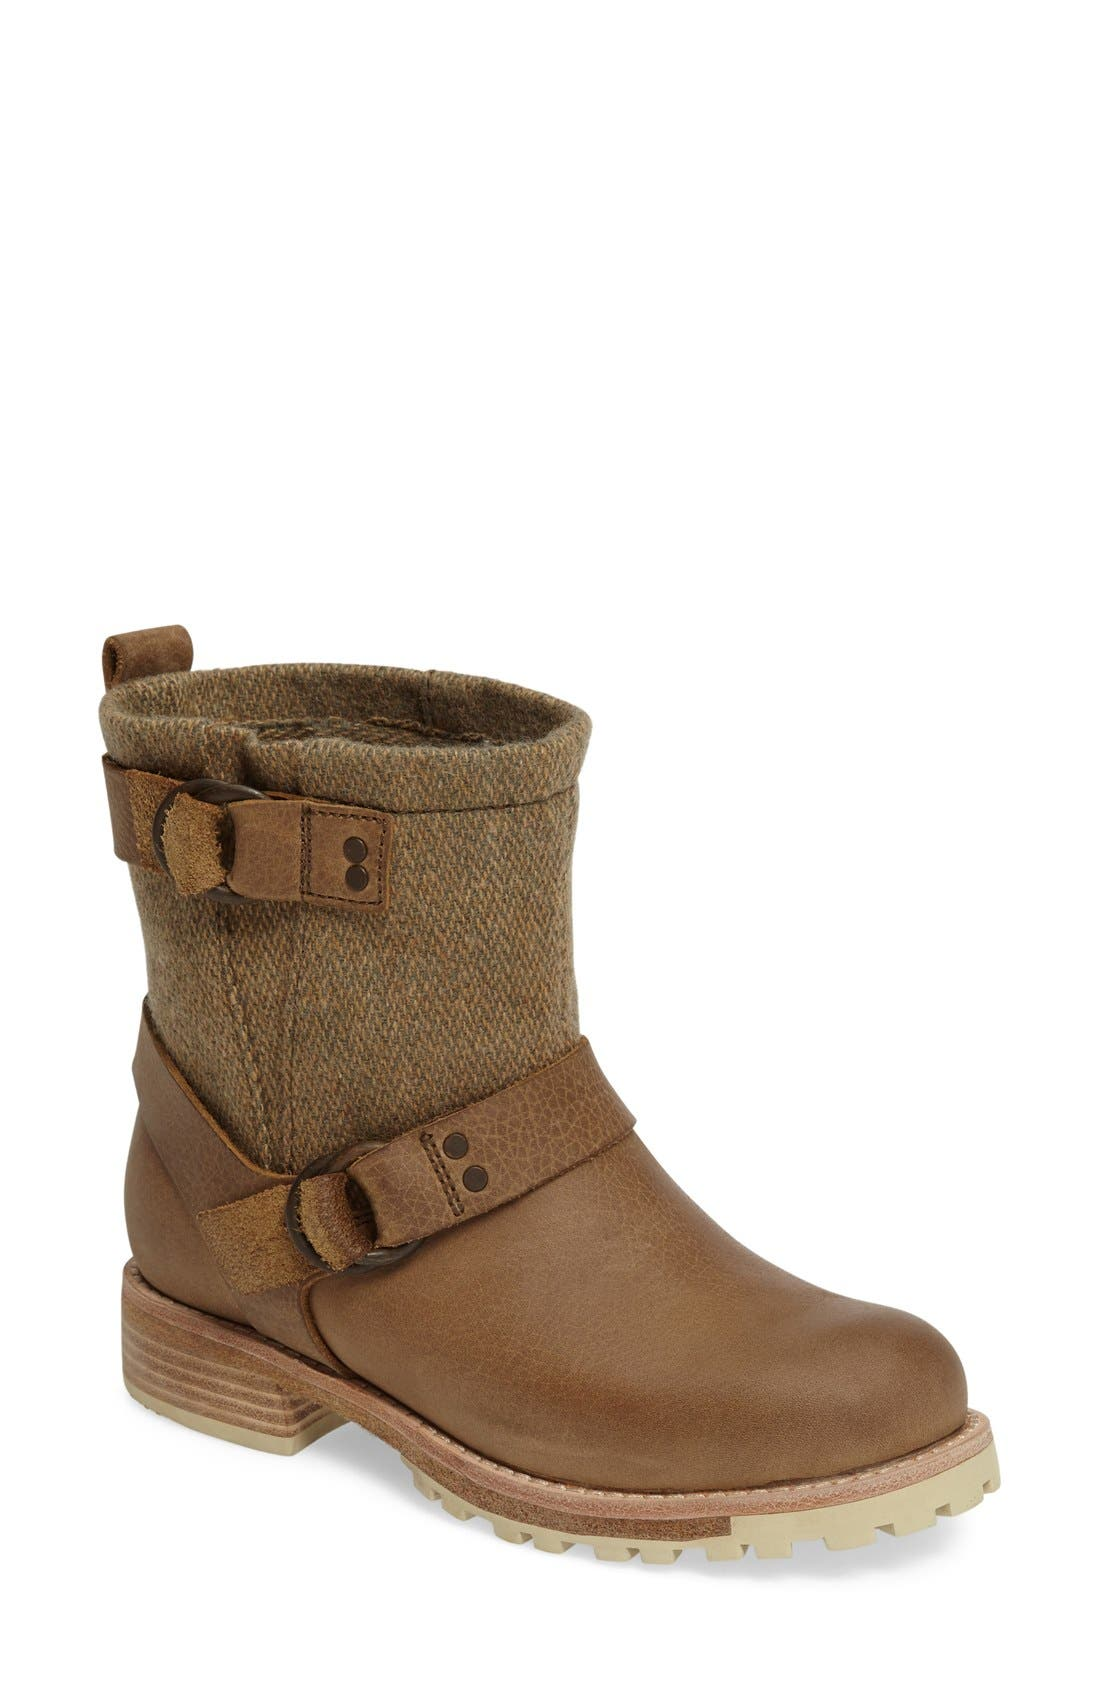 'Baltimore' Engineer Boot,                         Main,                         color, Sand/ Tweed Leather